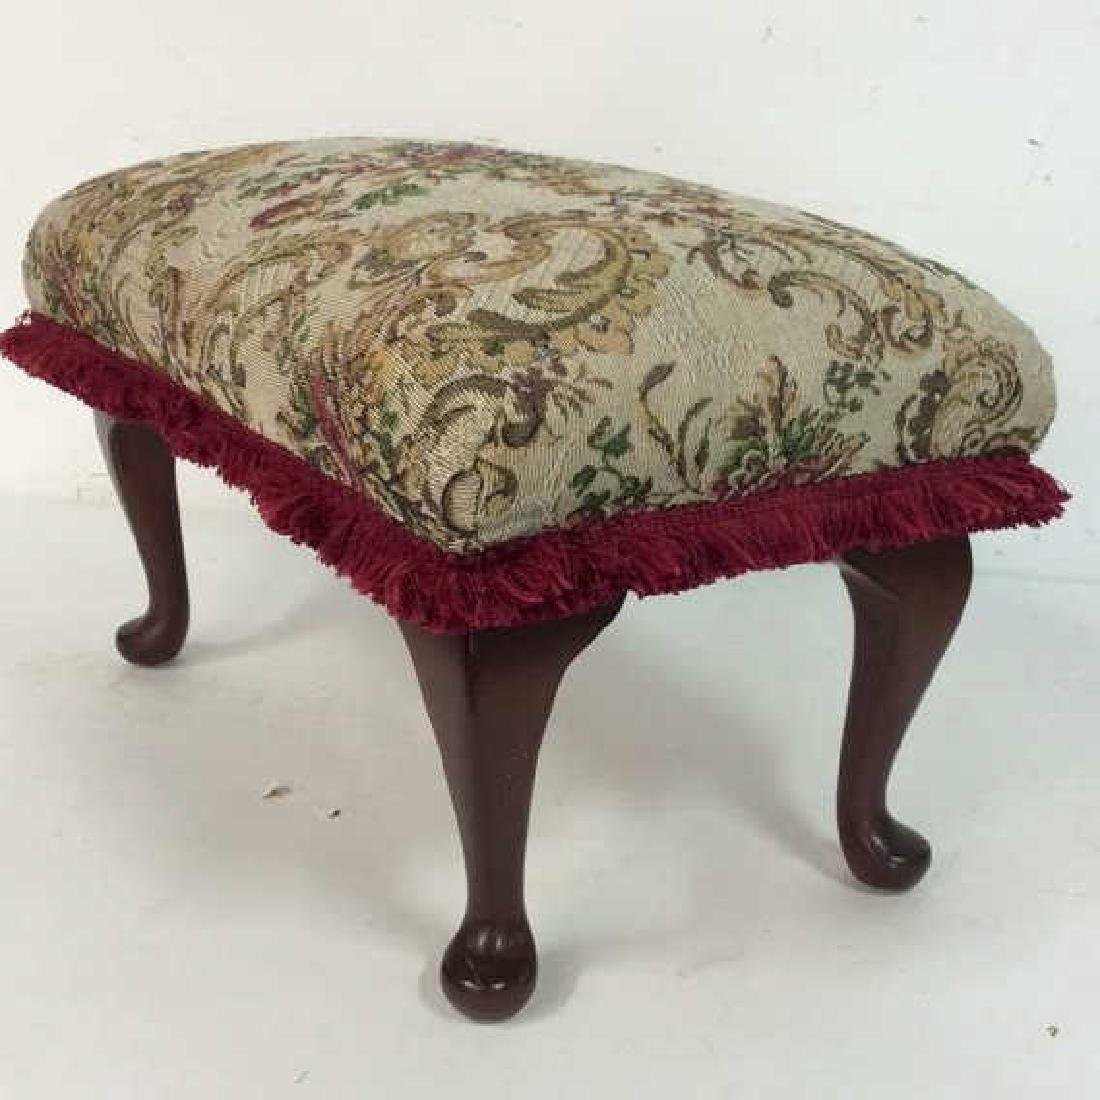 Embroidered Padded Leg Rest - 2